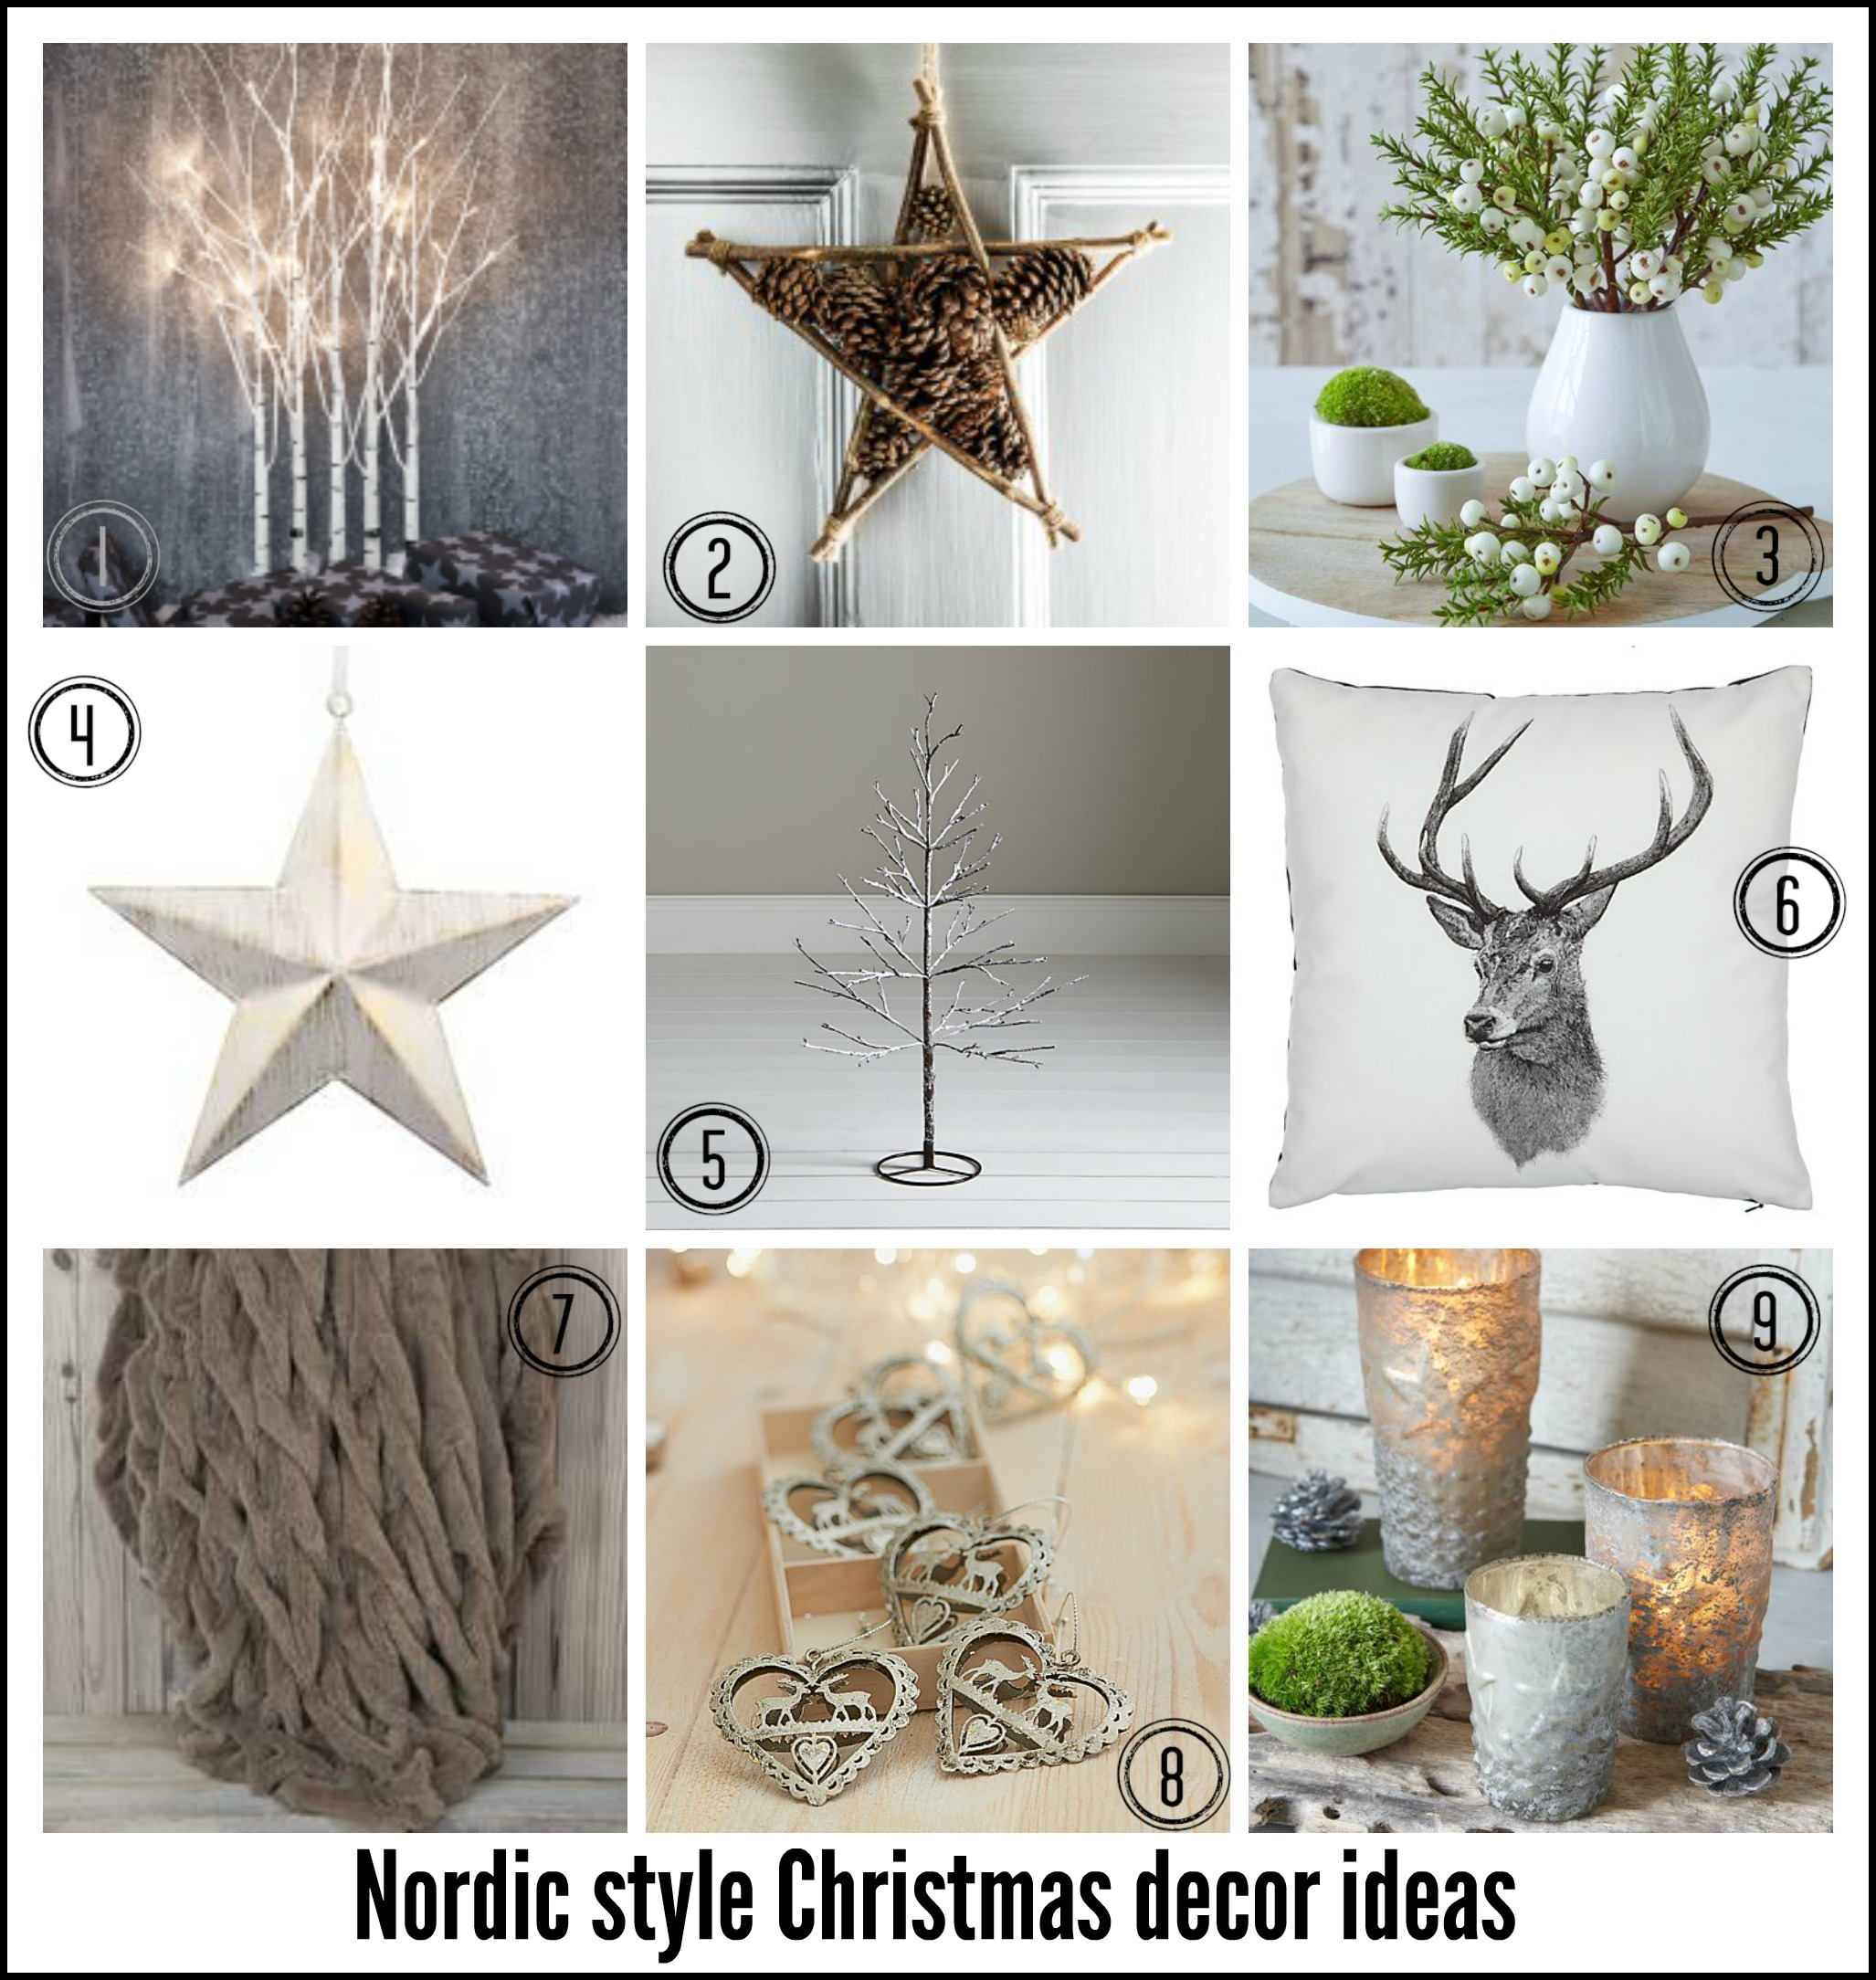 Nordic Small Fresh Home Design 4: Five Ways To Create A Nordic Christmas Style In Your Home